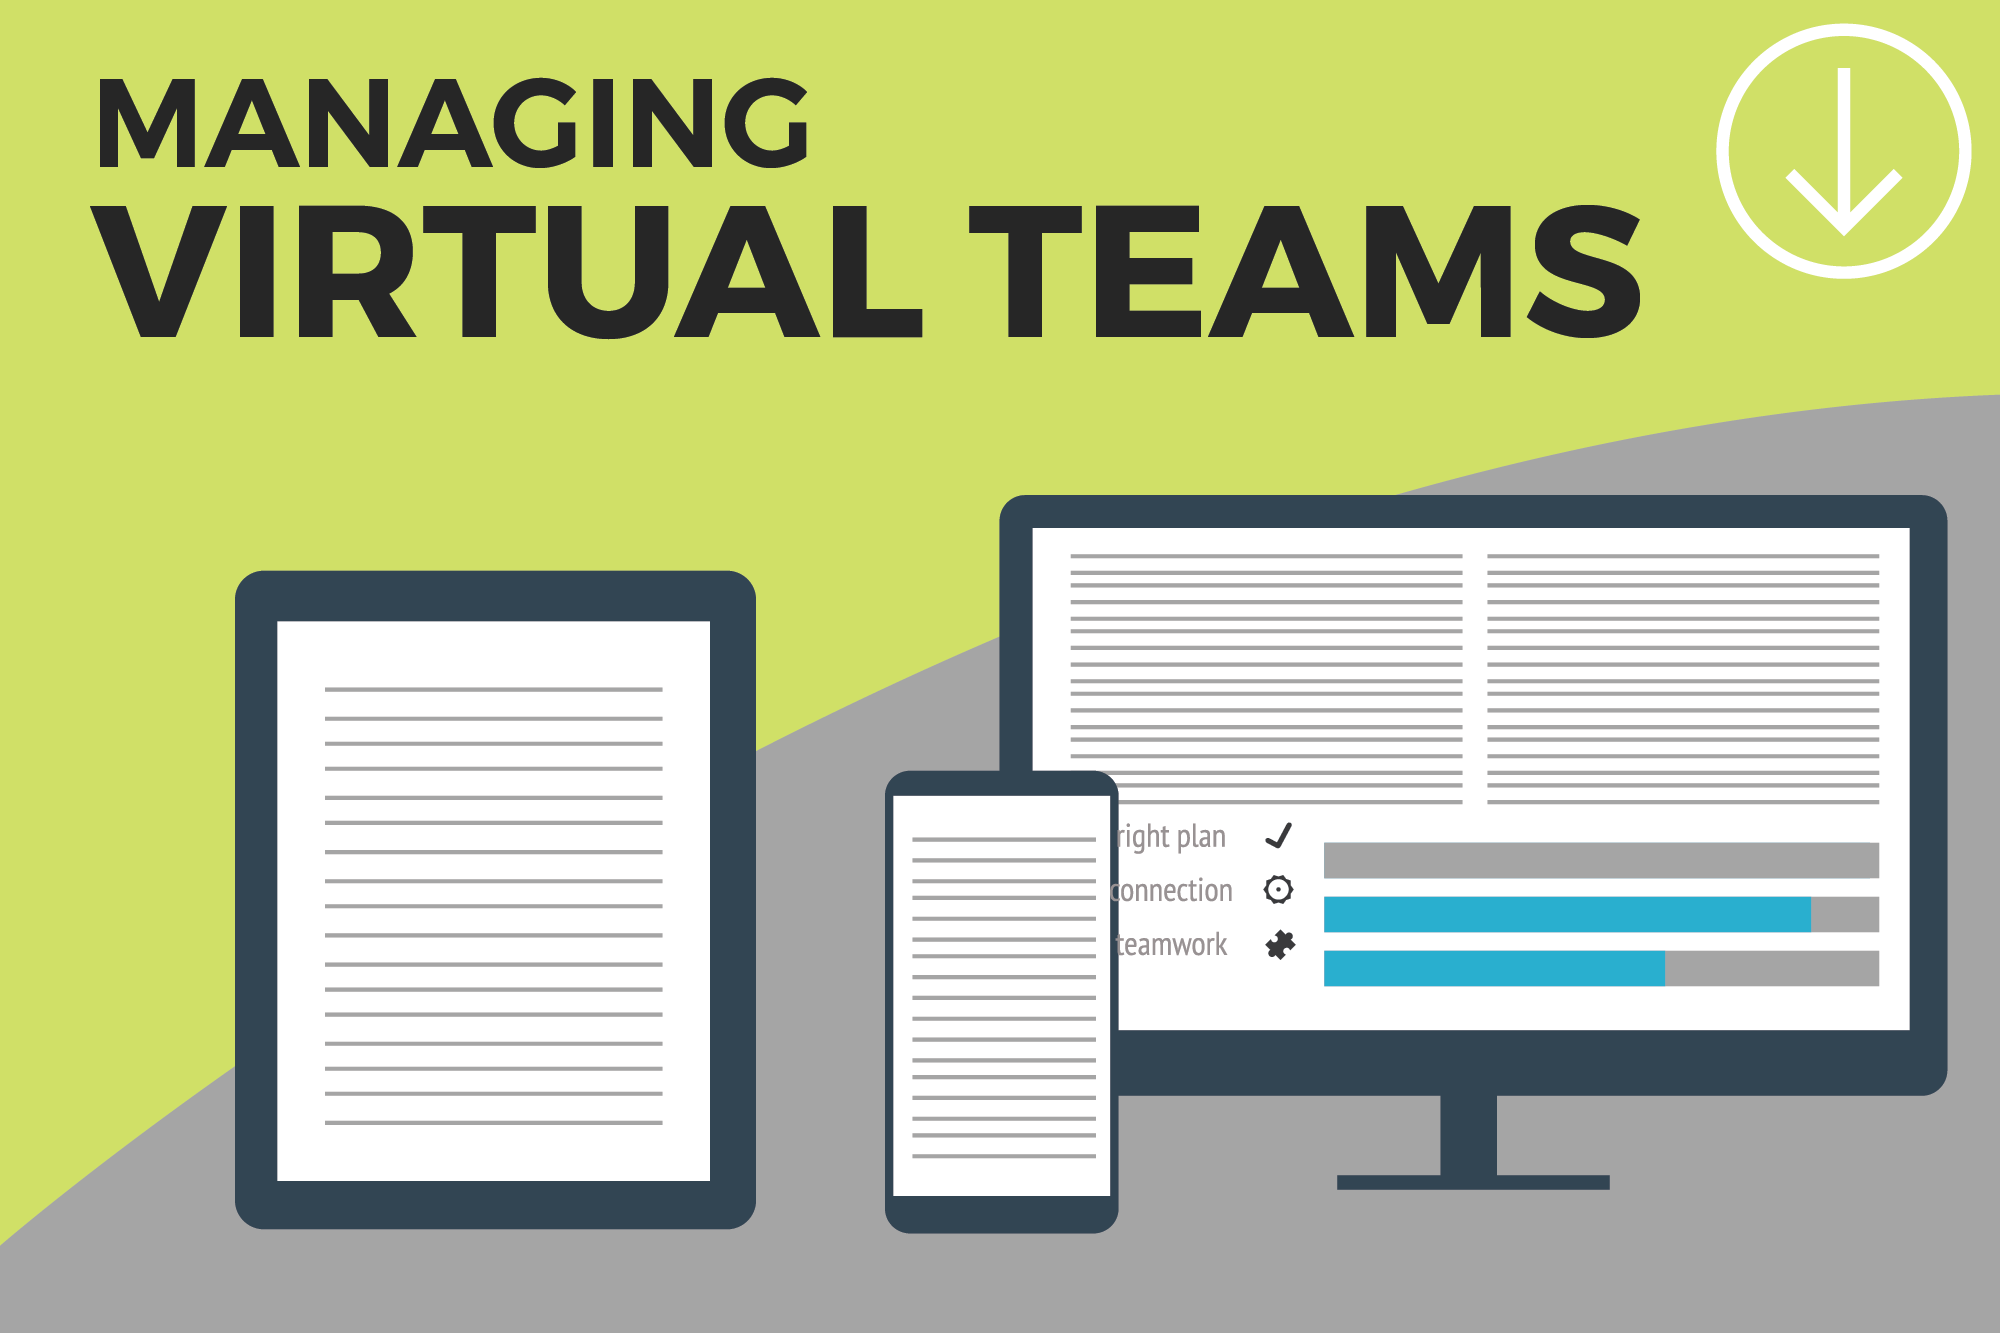 managing-virtual-teams-1.png